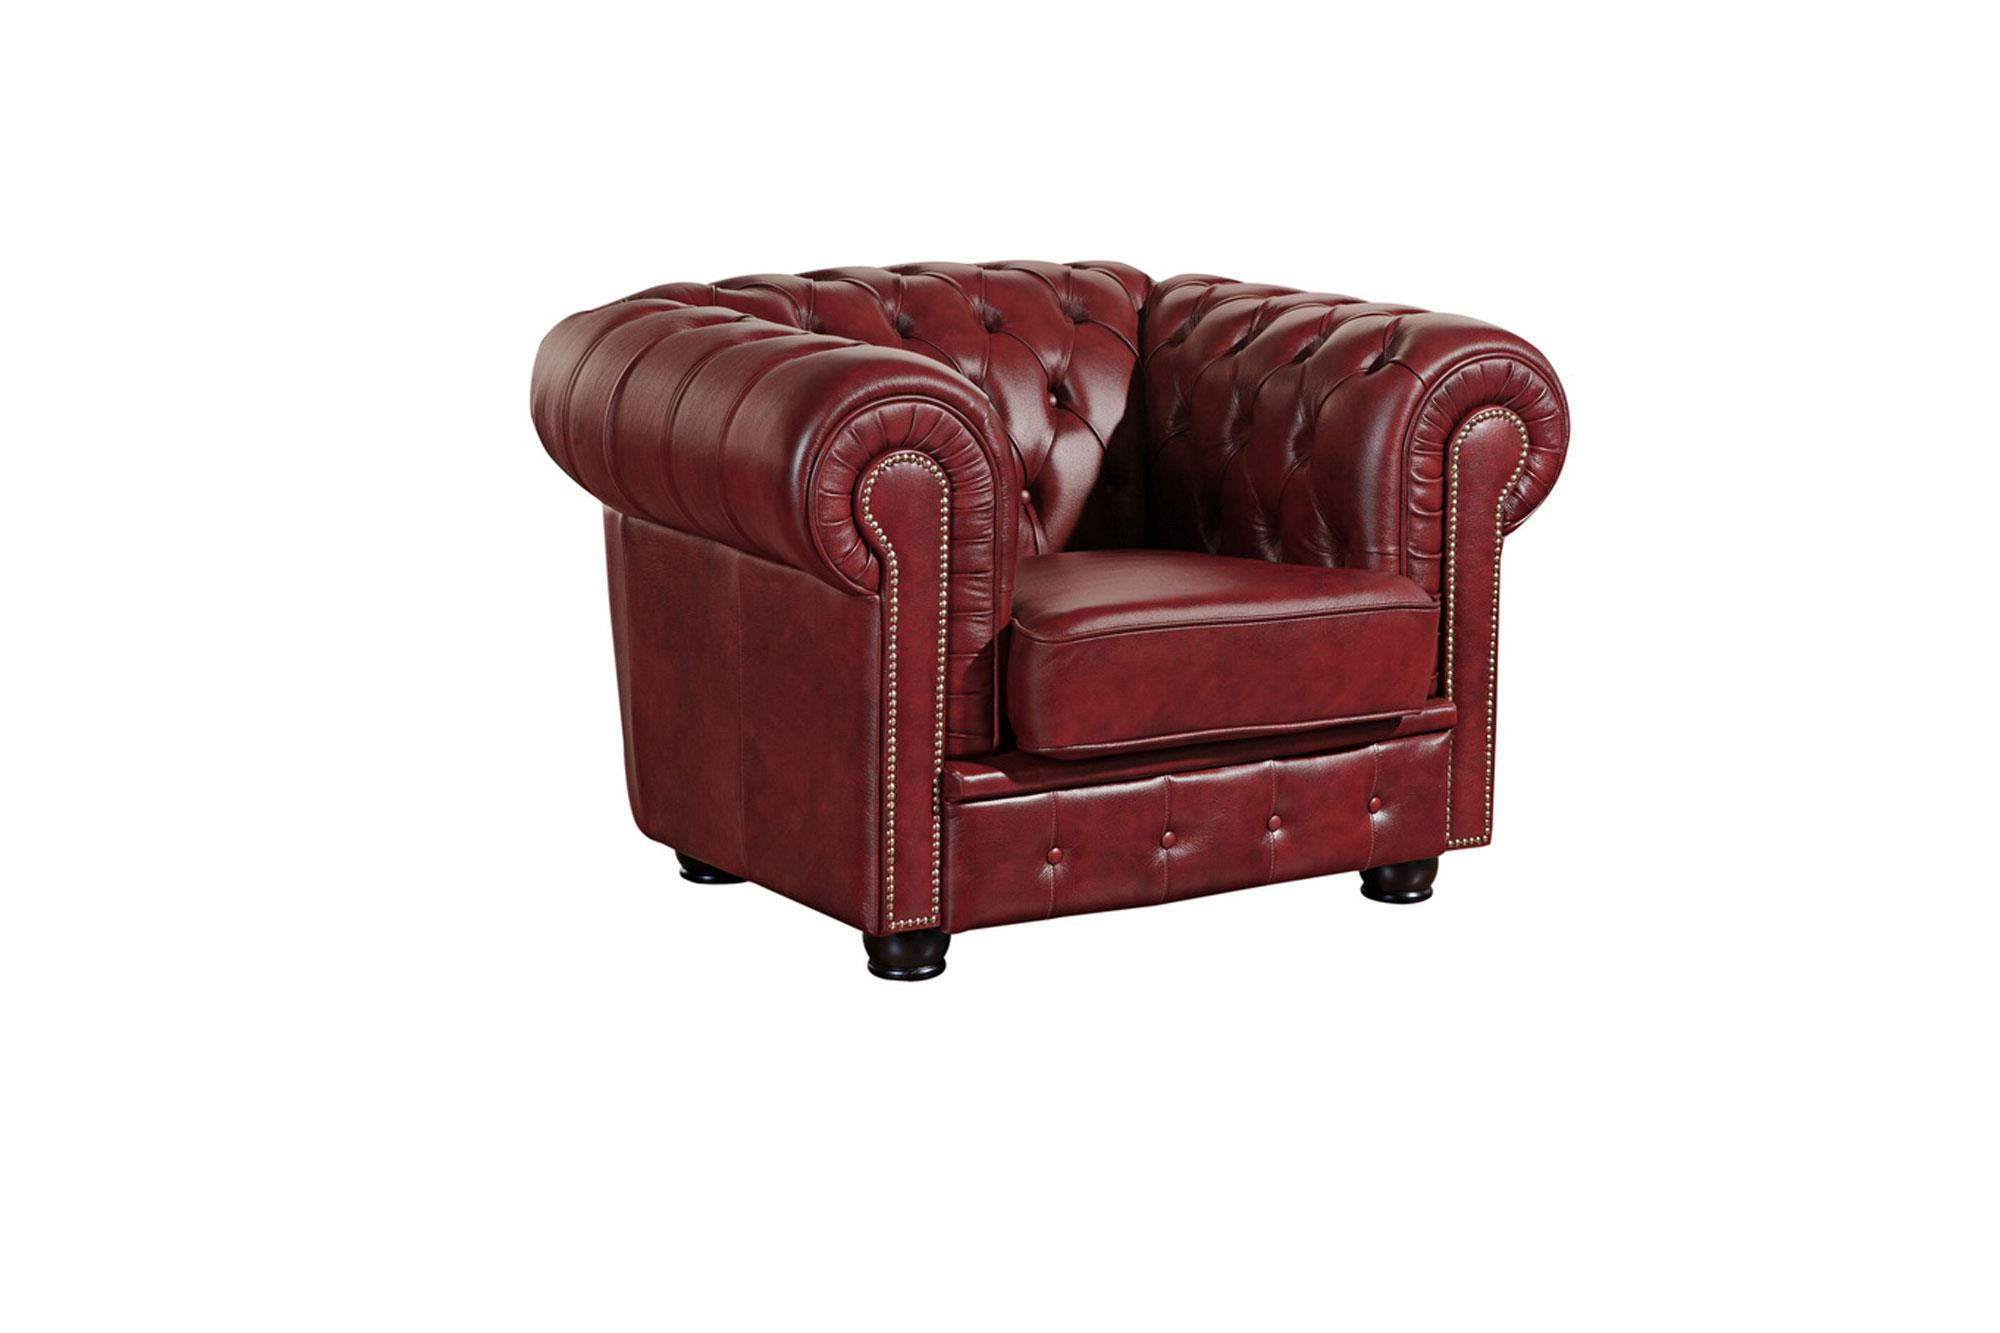 Chesterfield Sessel Max Winzer Chesterfield Sessel Norwin Wischleder